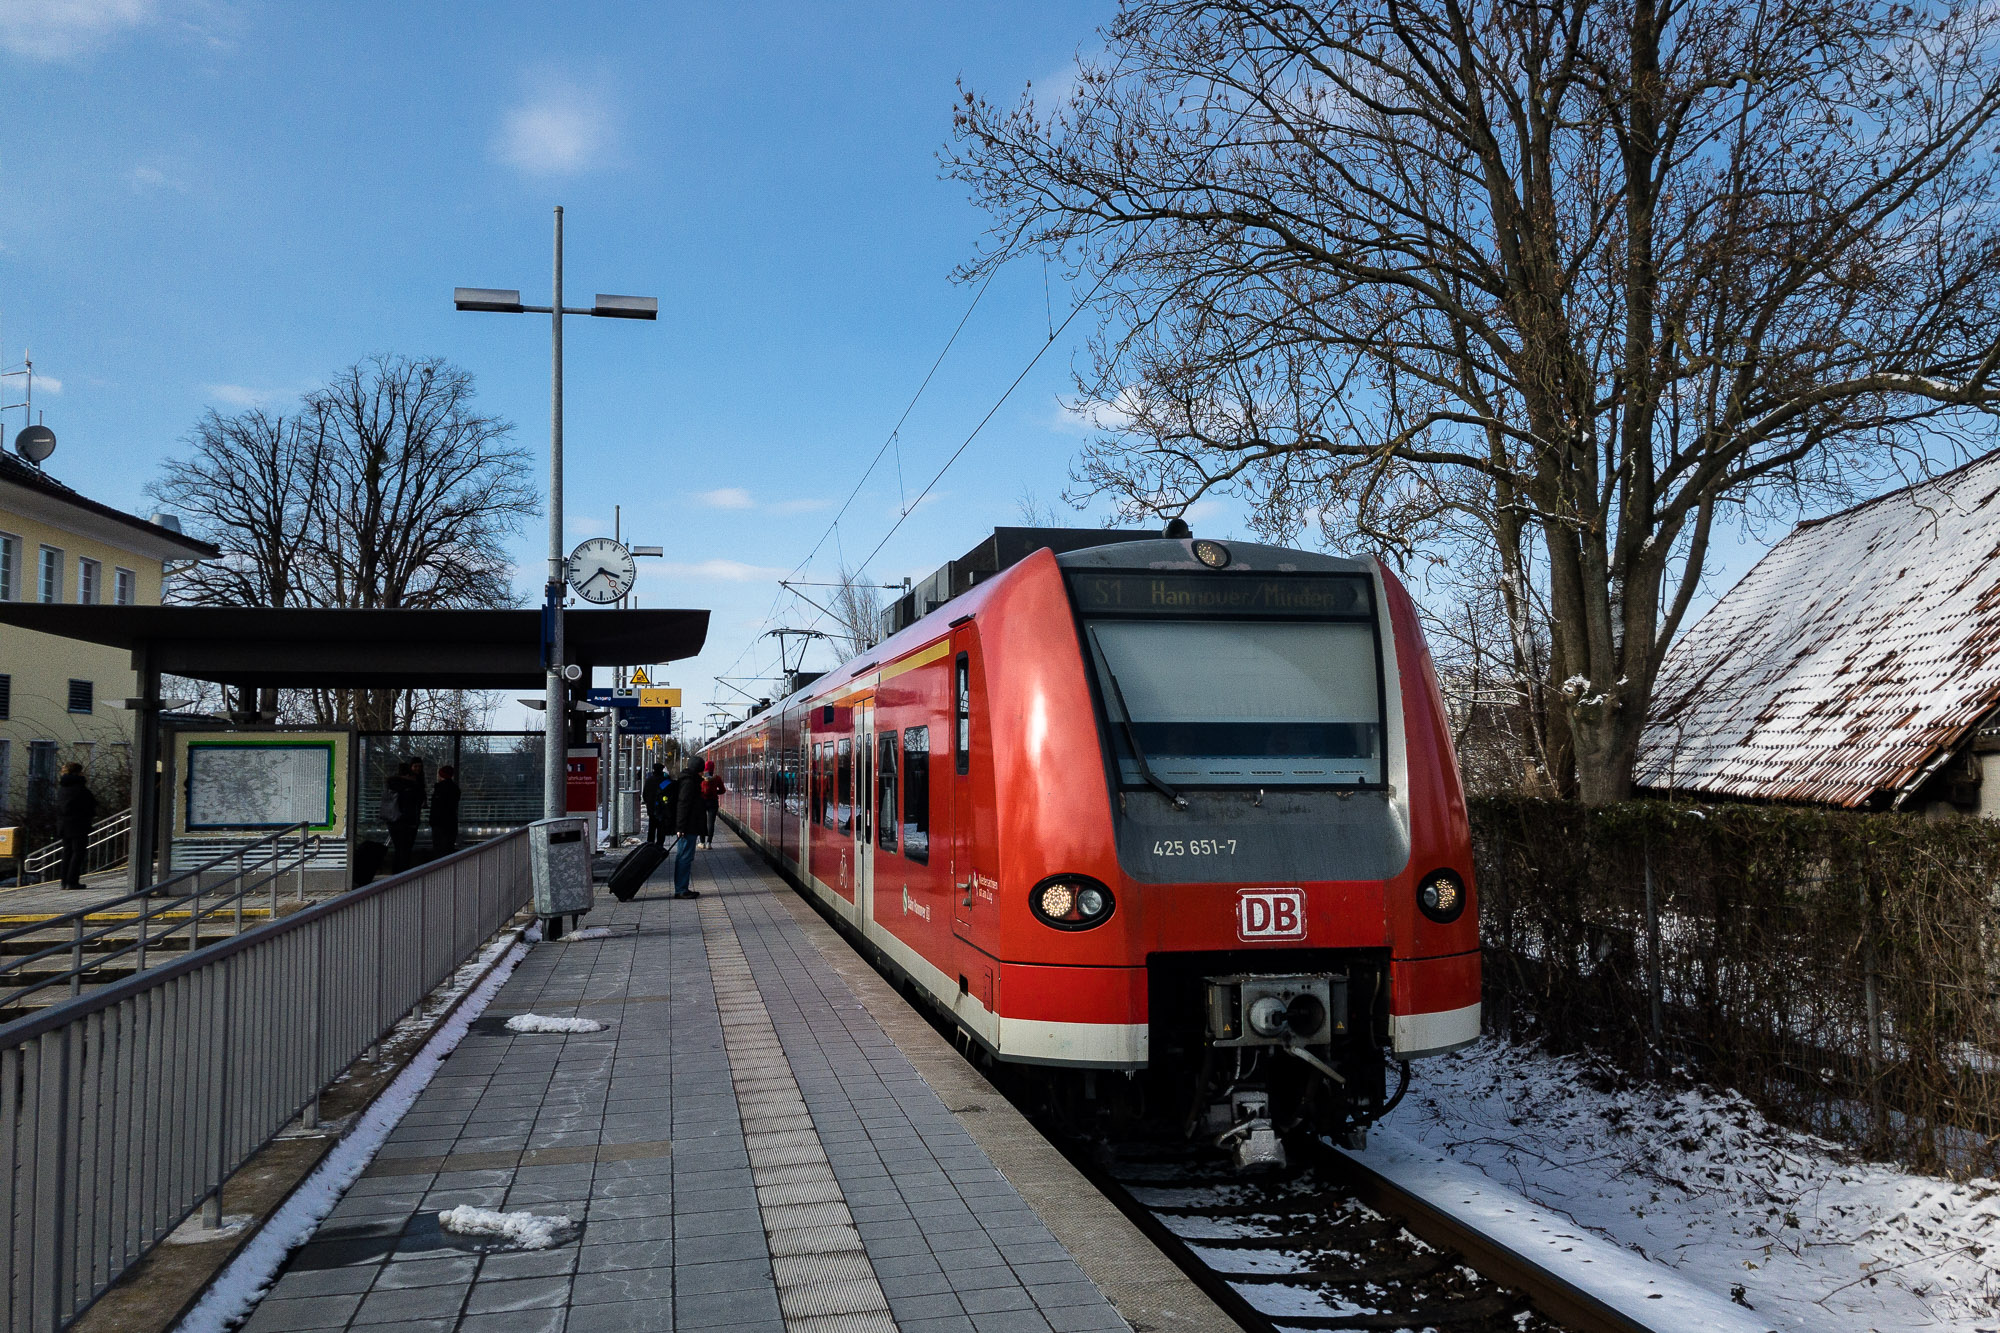 Bad Nenndorf station